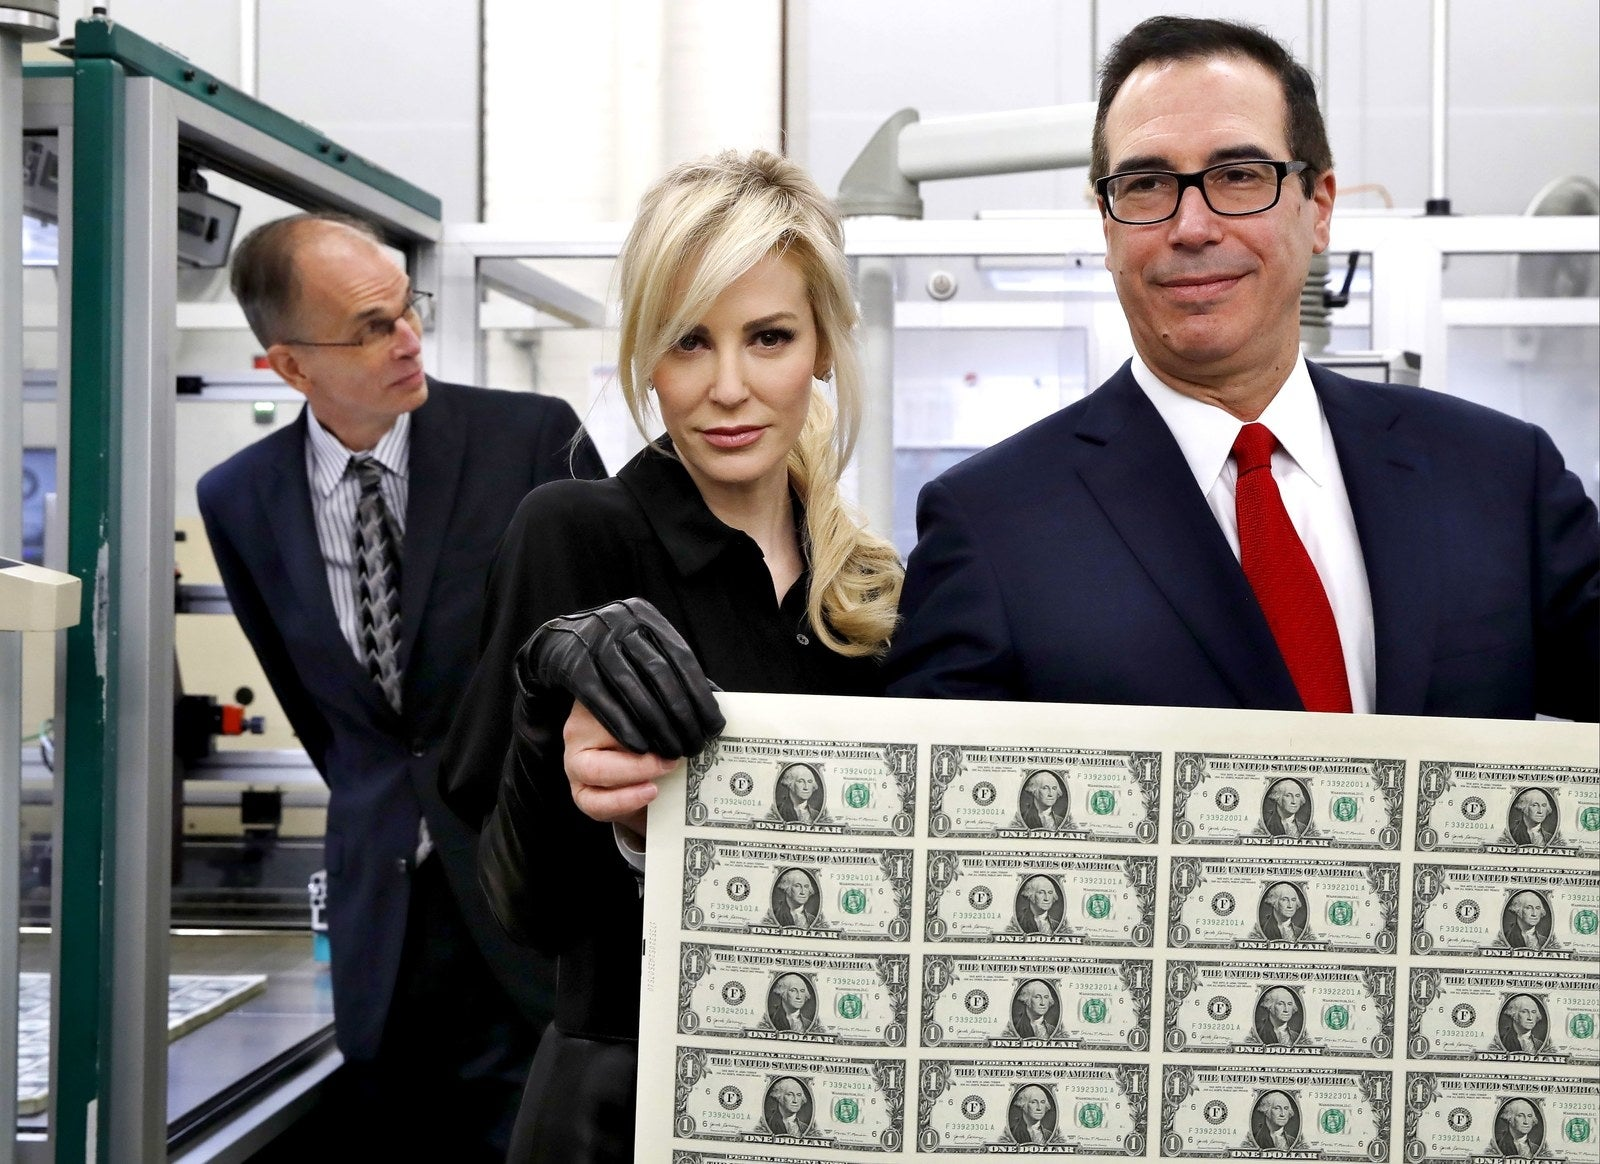 Treasury Secretary Steven Mnuchin (right) and his wife Louise Linton hold up a sheet of new $1 bills, the first currency notes bearing his and US Treasurer Jovita Carranza's signatures, at the Bureau of Engraving and Printing in Washington, DC.